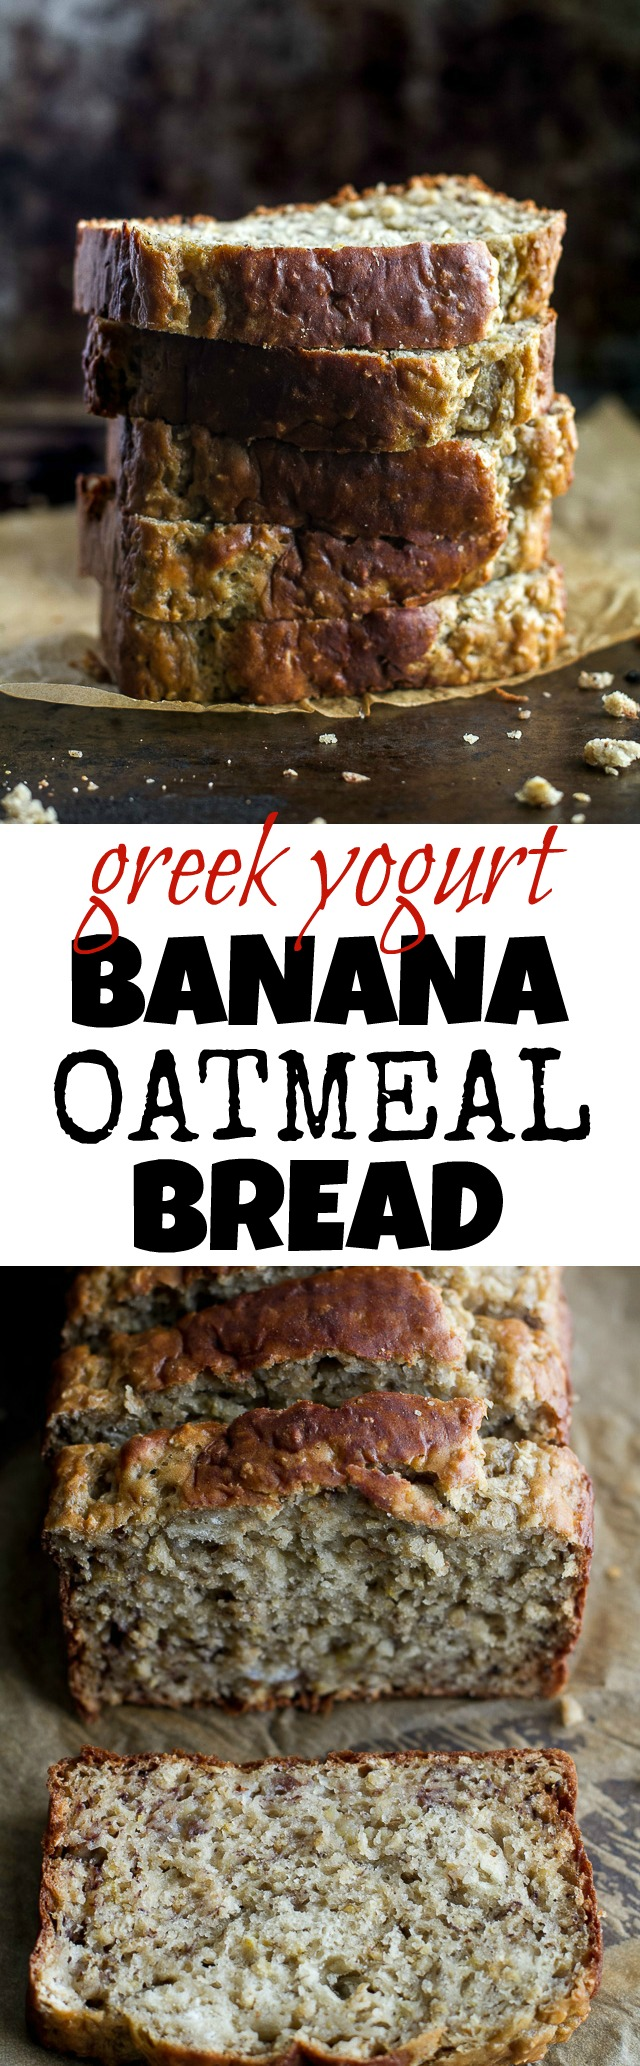 Greek Yogurt Banana Oat Bread - so soft and tender that you'd never be able to tell it's made without any butter or oil. This recipe is a great healthier alternative to a traditional favourite | runningwithspoons.com